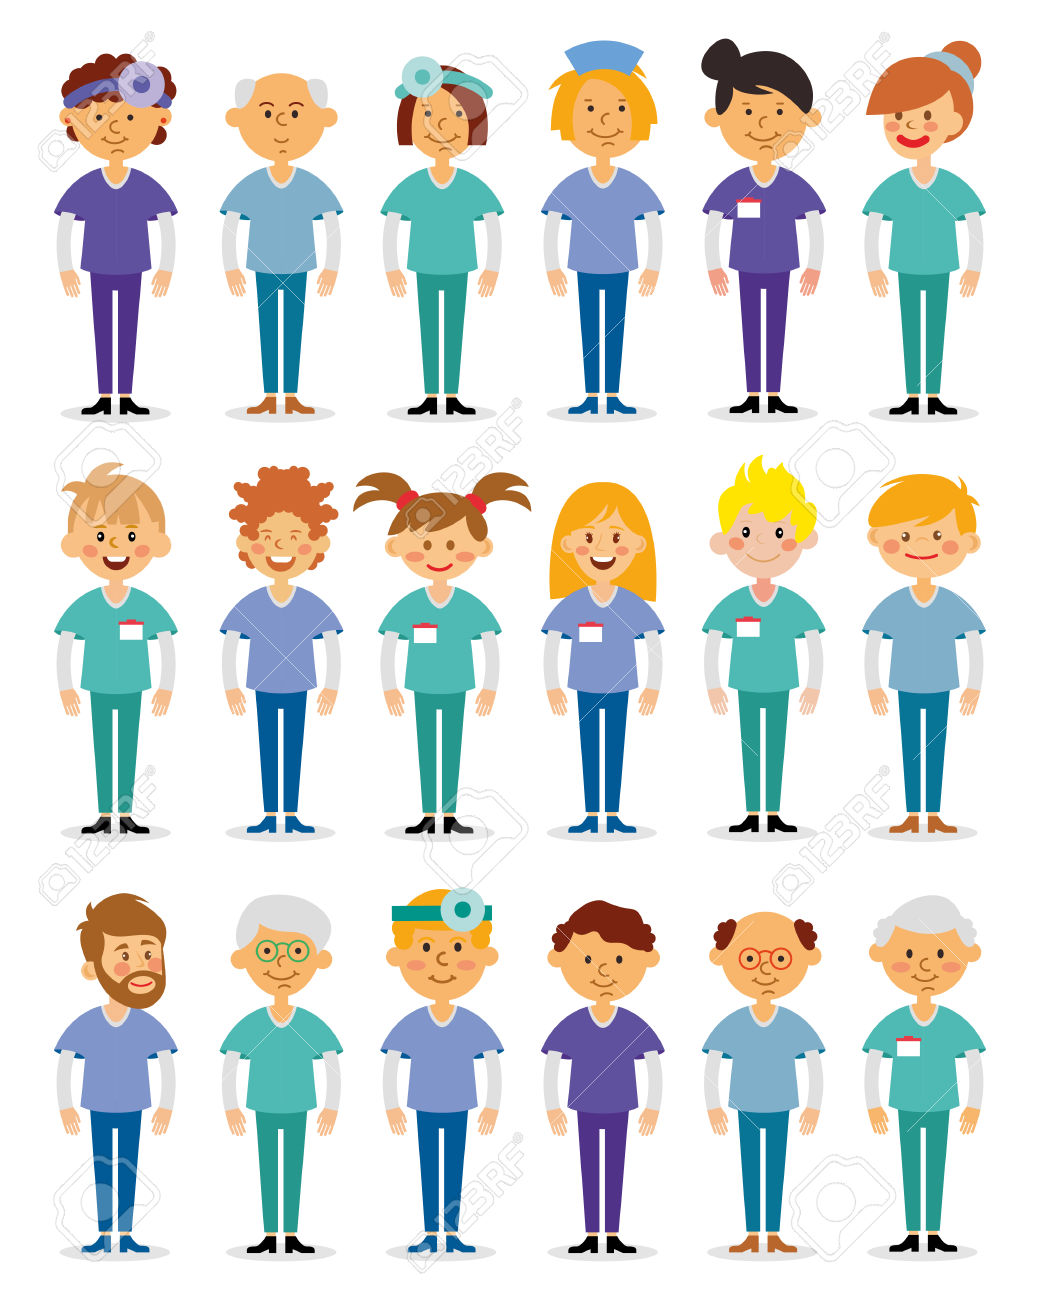 Doctors And Nurses And Medical Staffs Flat Design Icon Set.